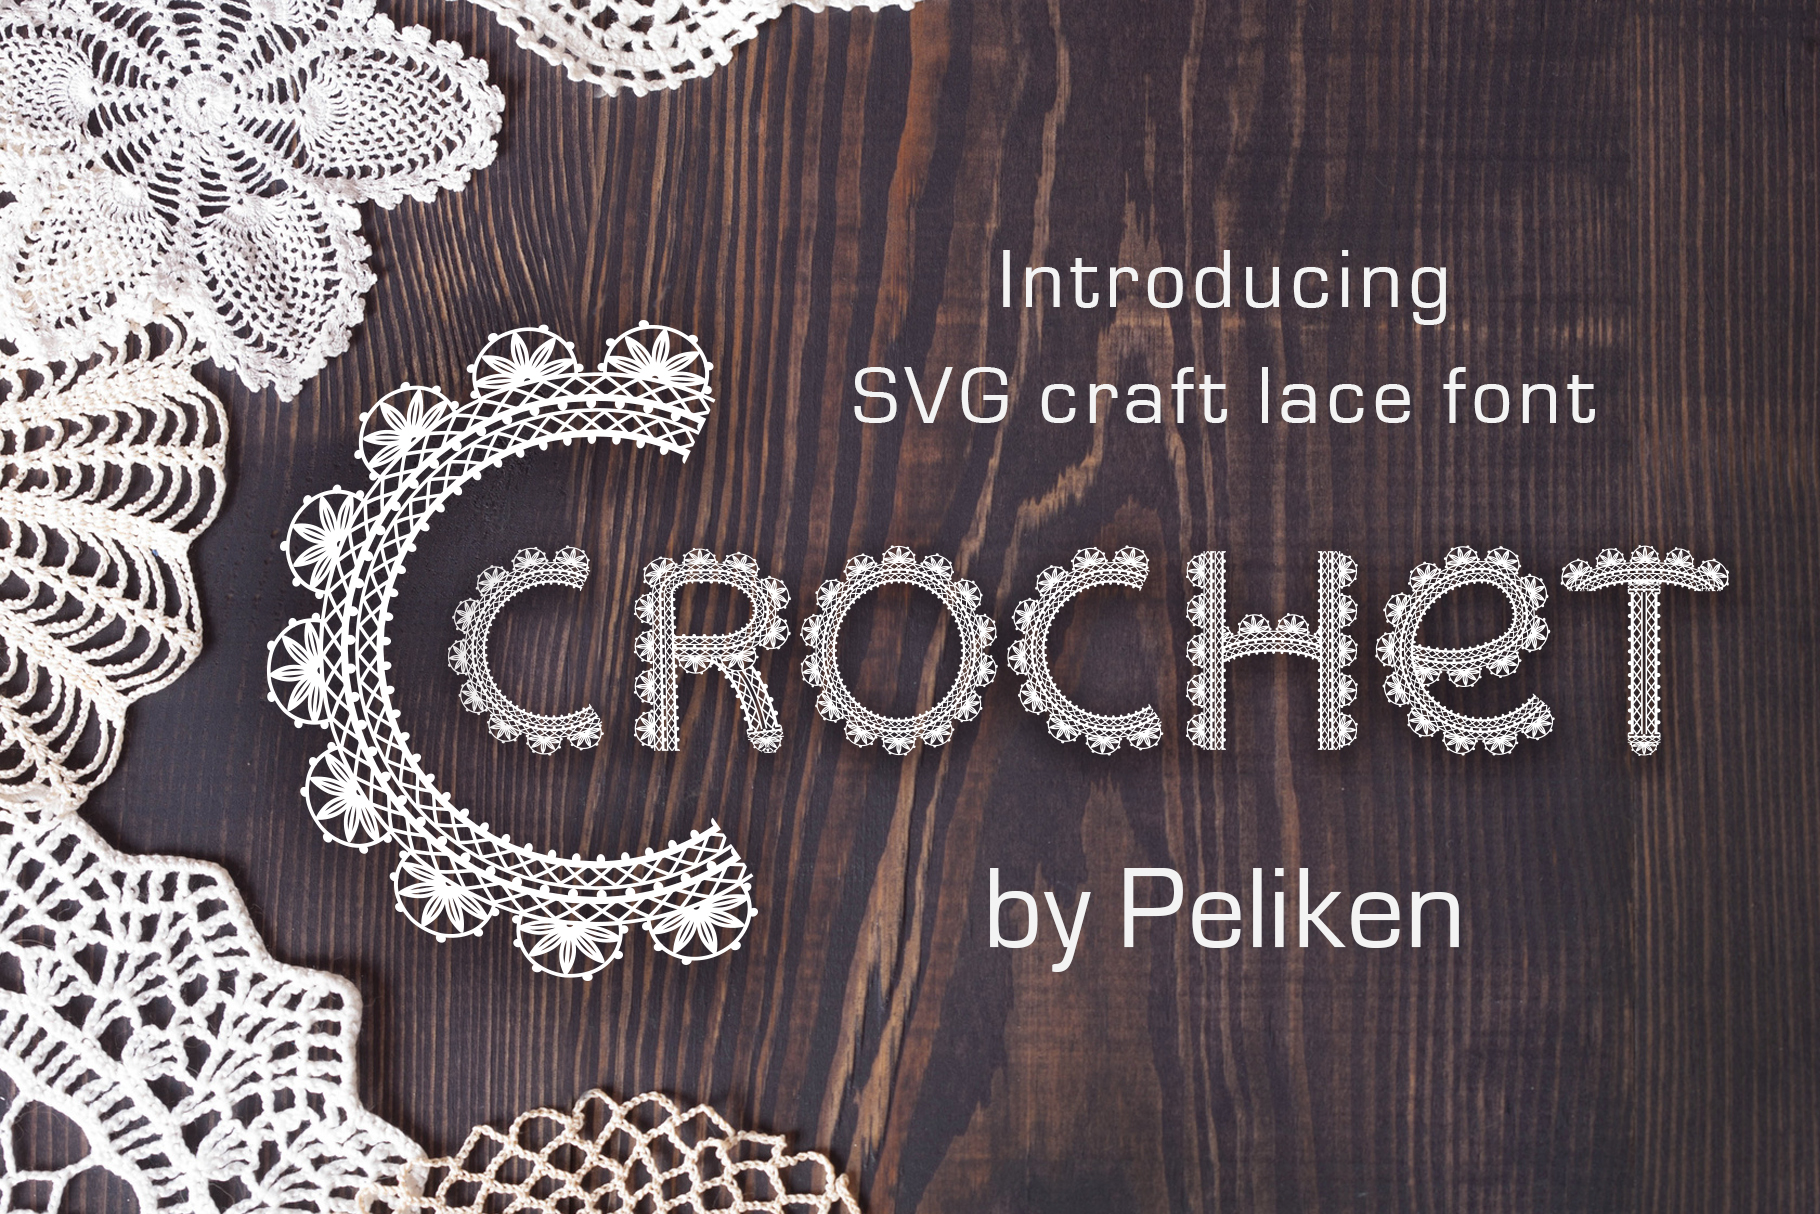 Crochet - svg craft lace font example image 1